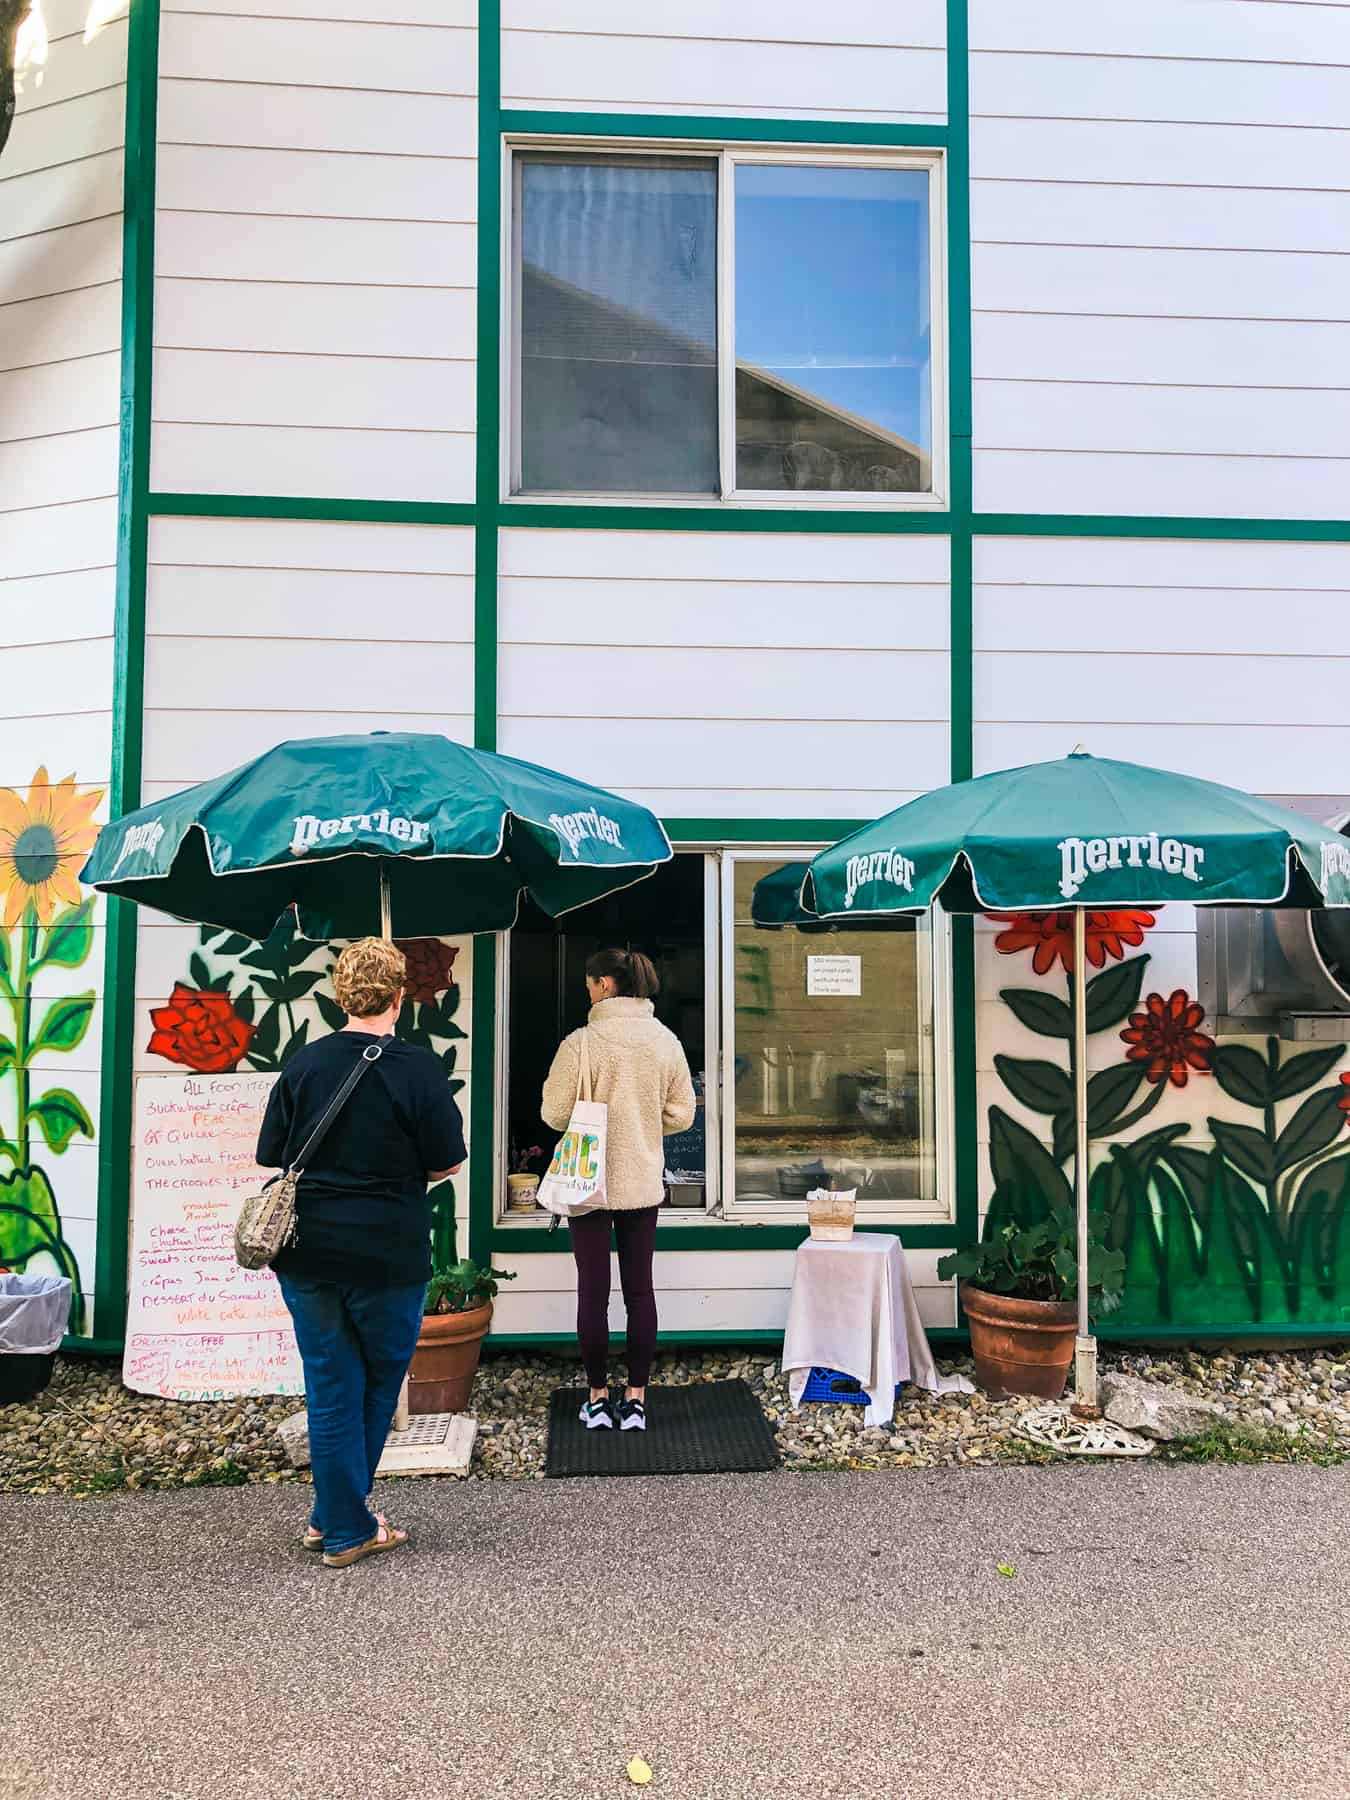 People walk up to order at the window of a building with white siding and green trim. Green patio umbrellas sit outside next to a white board with a menu for Le Petit Cafe.